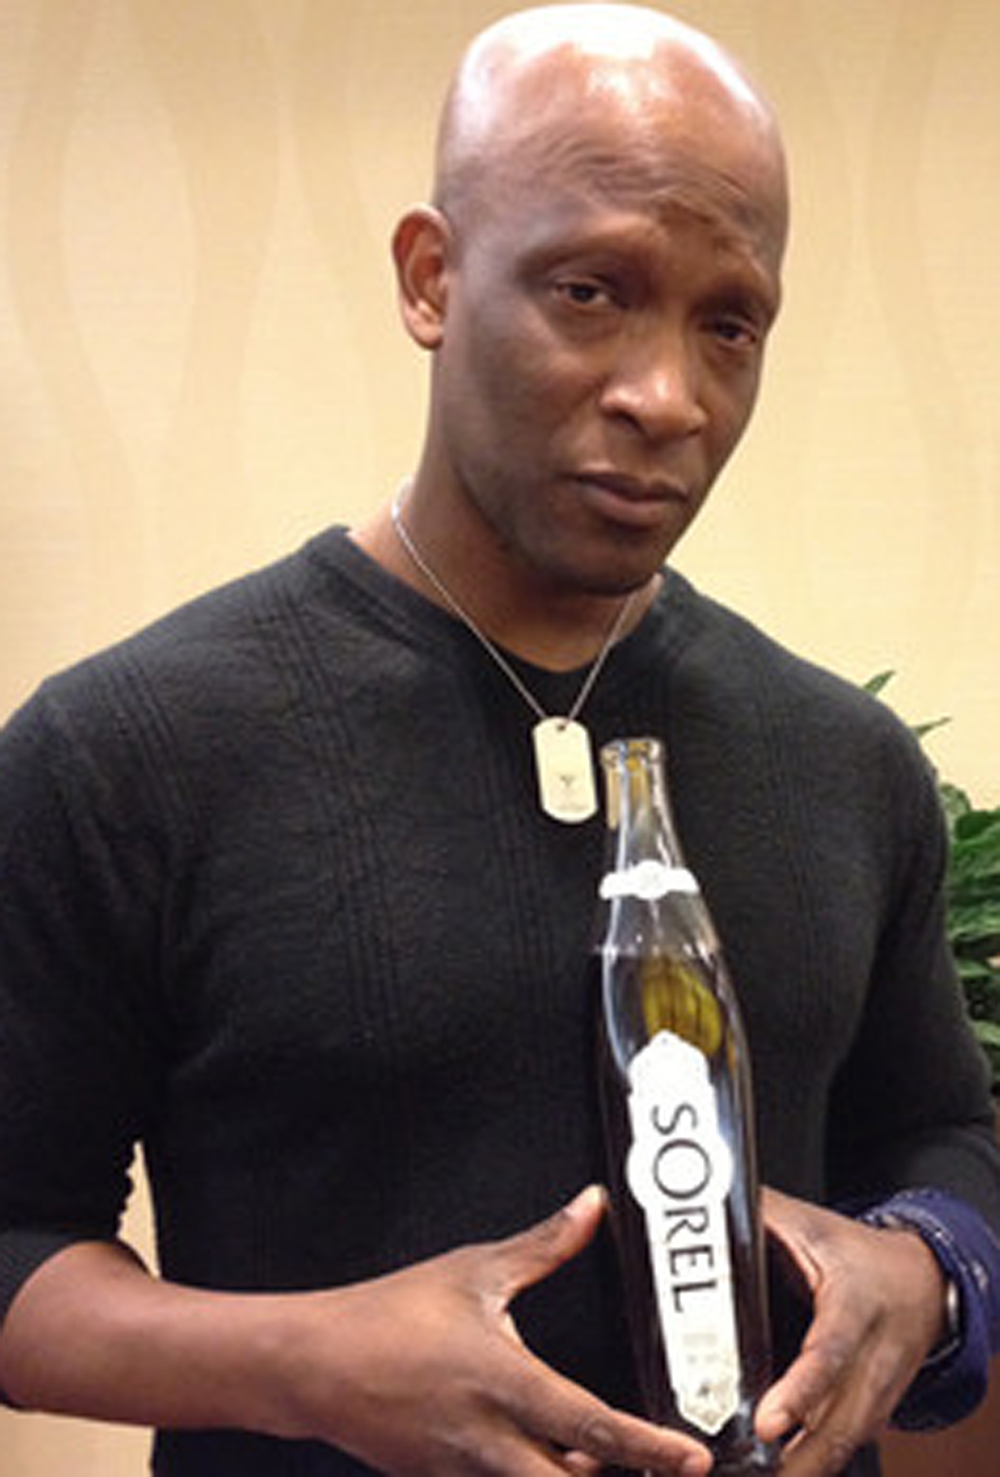 Jack from Brooklyn Brings Spirit to D.C. Winebow Tasting